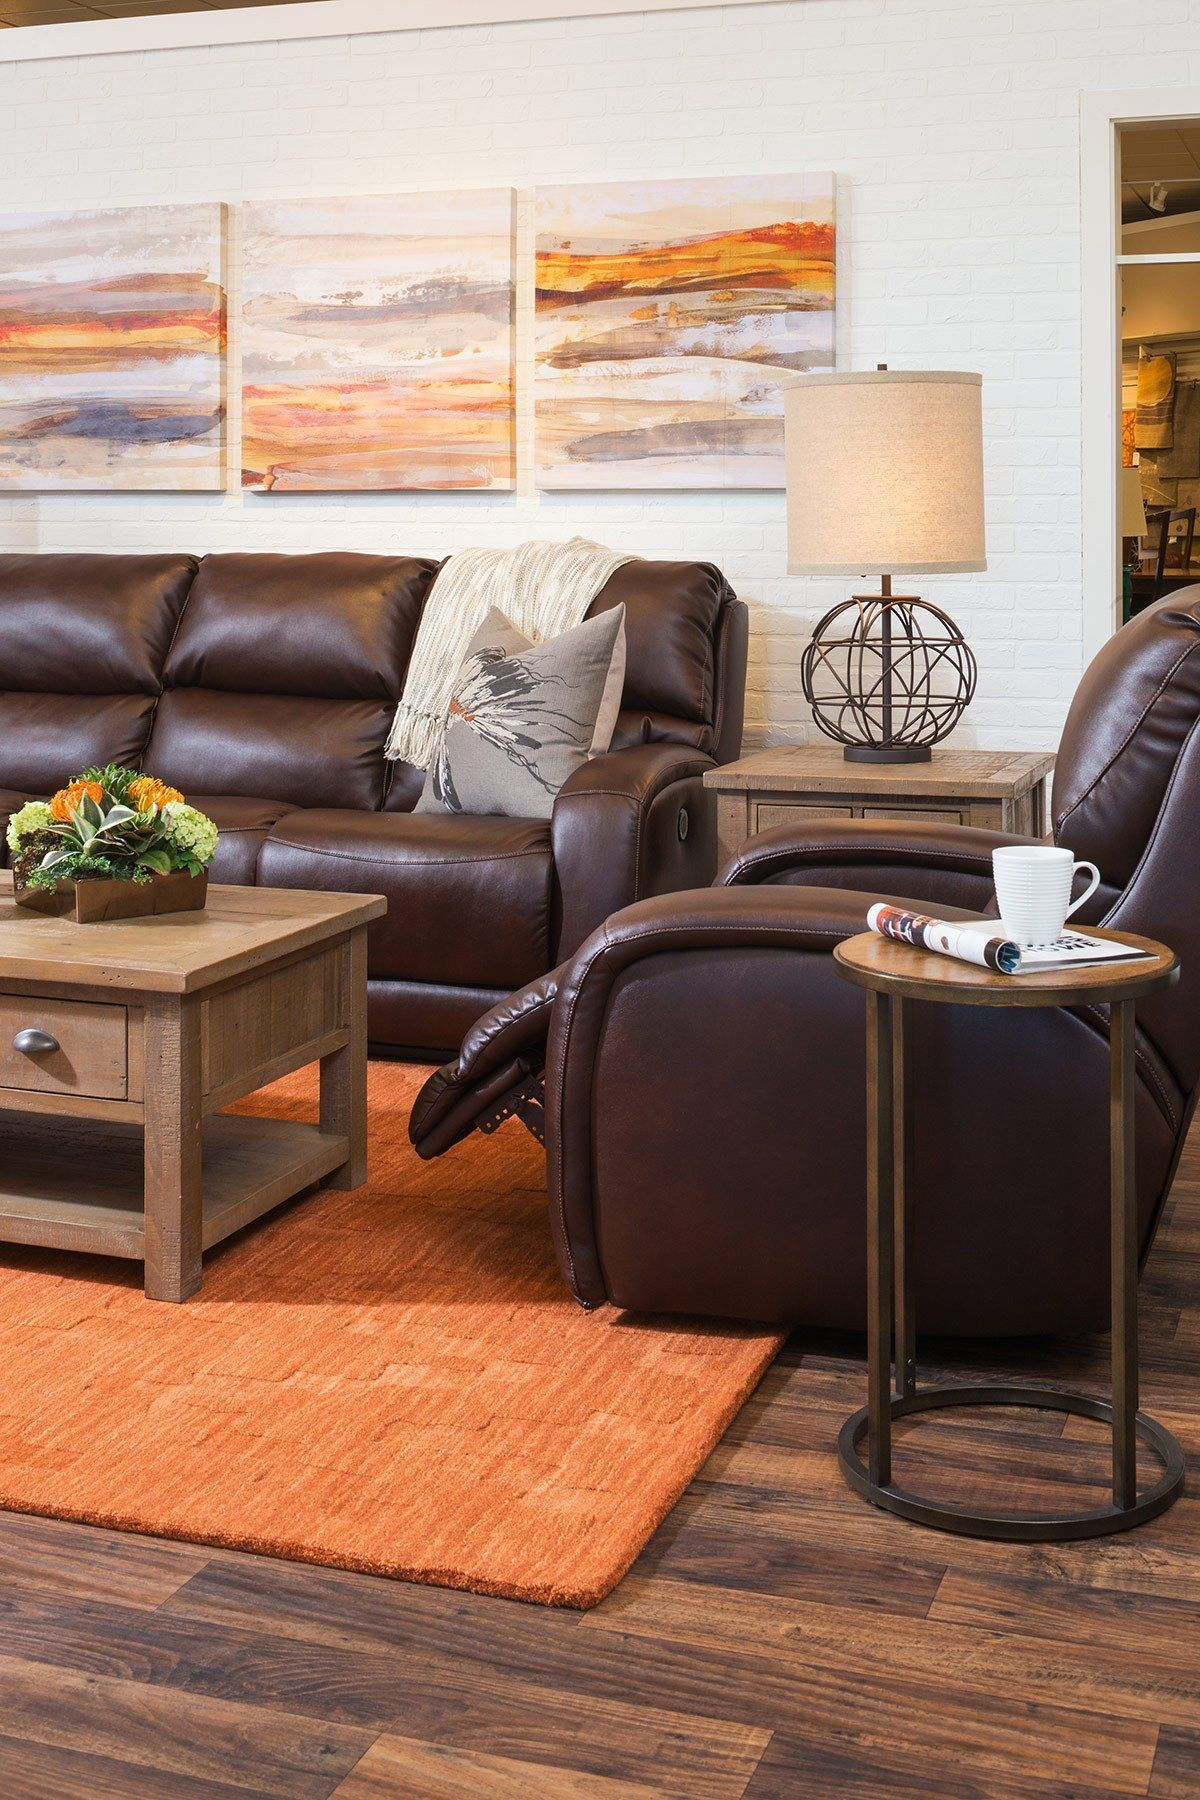 24 Best Living Room Ideas To Your Home Livingroomideas Grey Living Room Ideas Home L Living Room Decor Brown Couch Brown Living Room Decor Living Room Orange